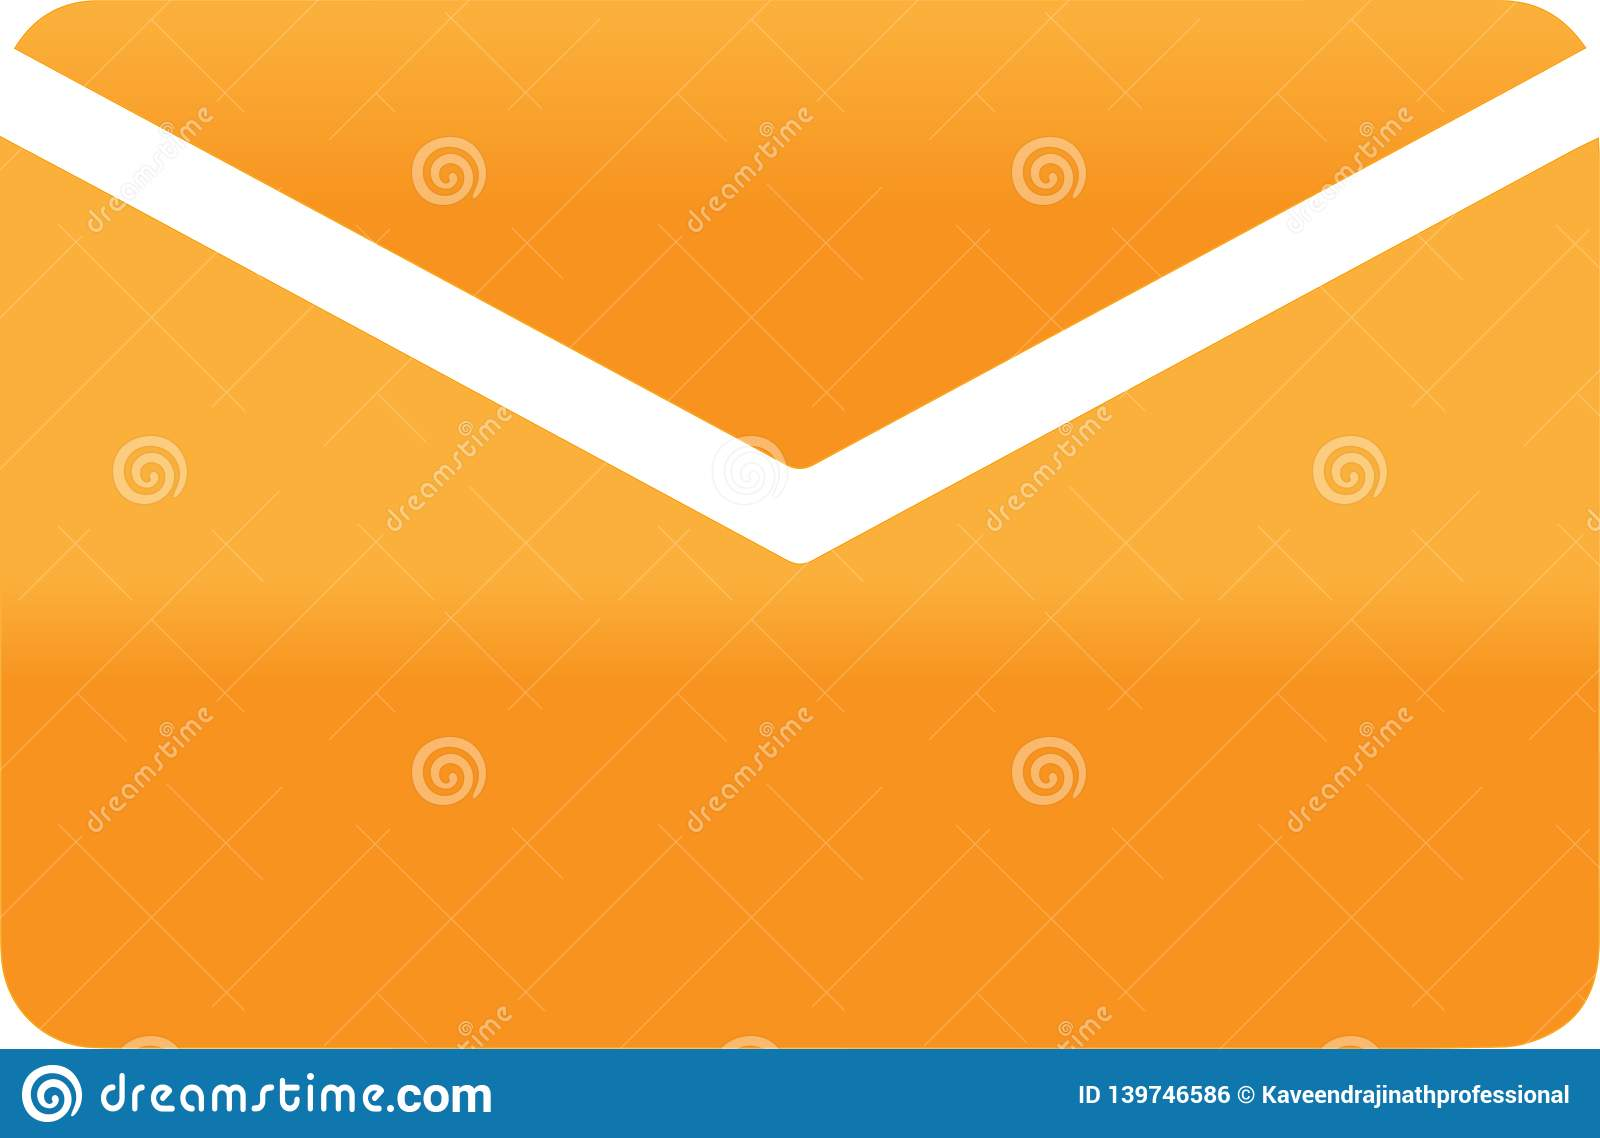 Abstract Envelope icon illustration on white